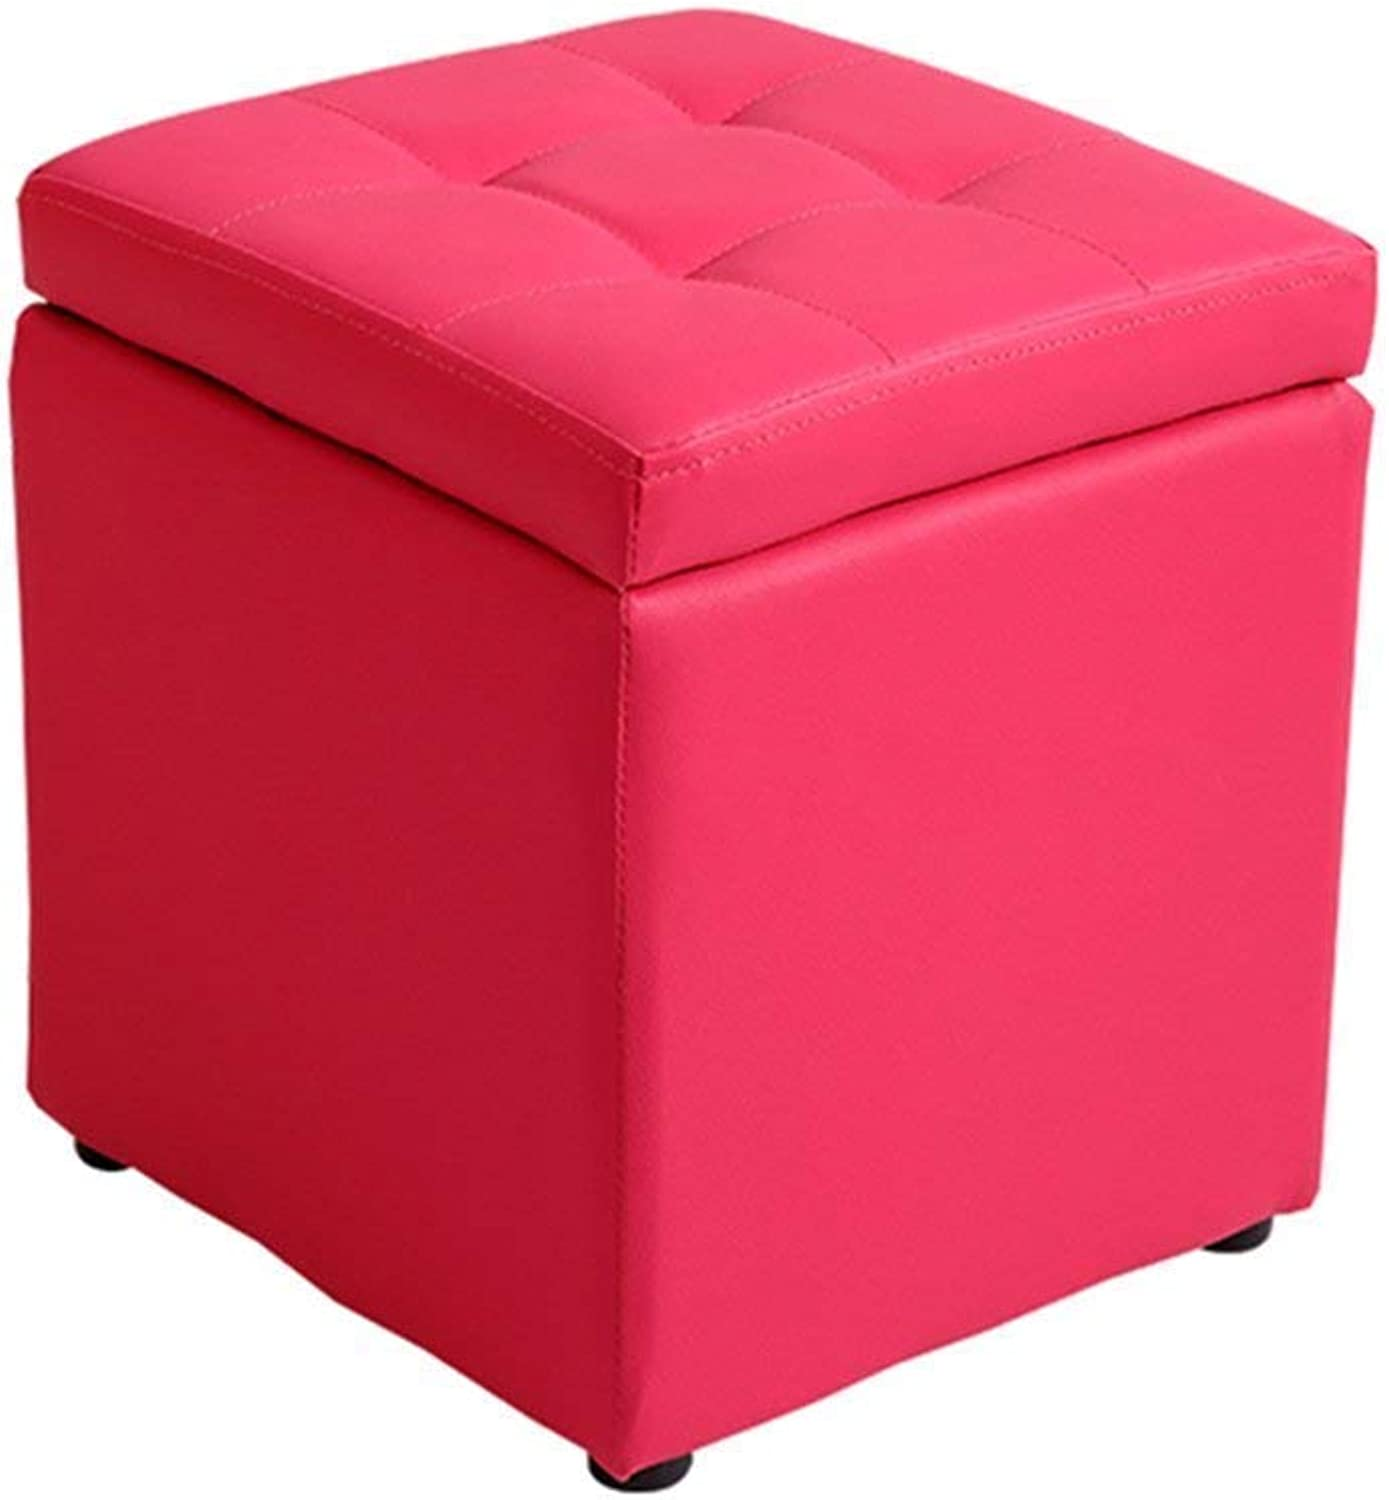 ChenDz Cute Stool Creative Leather Stool Fitting Room Change shoes Stool Sofa Stool Hall wear shoes Bench Large Space Storage Stool Storage Bench PU Leather seat Living Room red